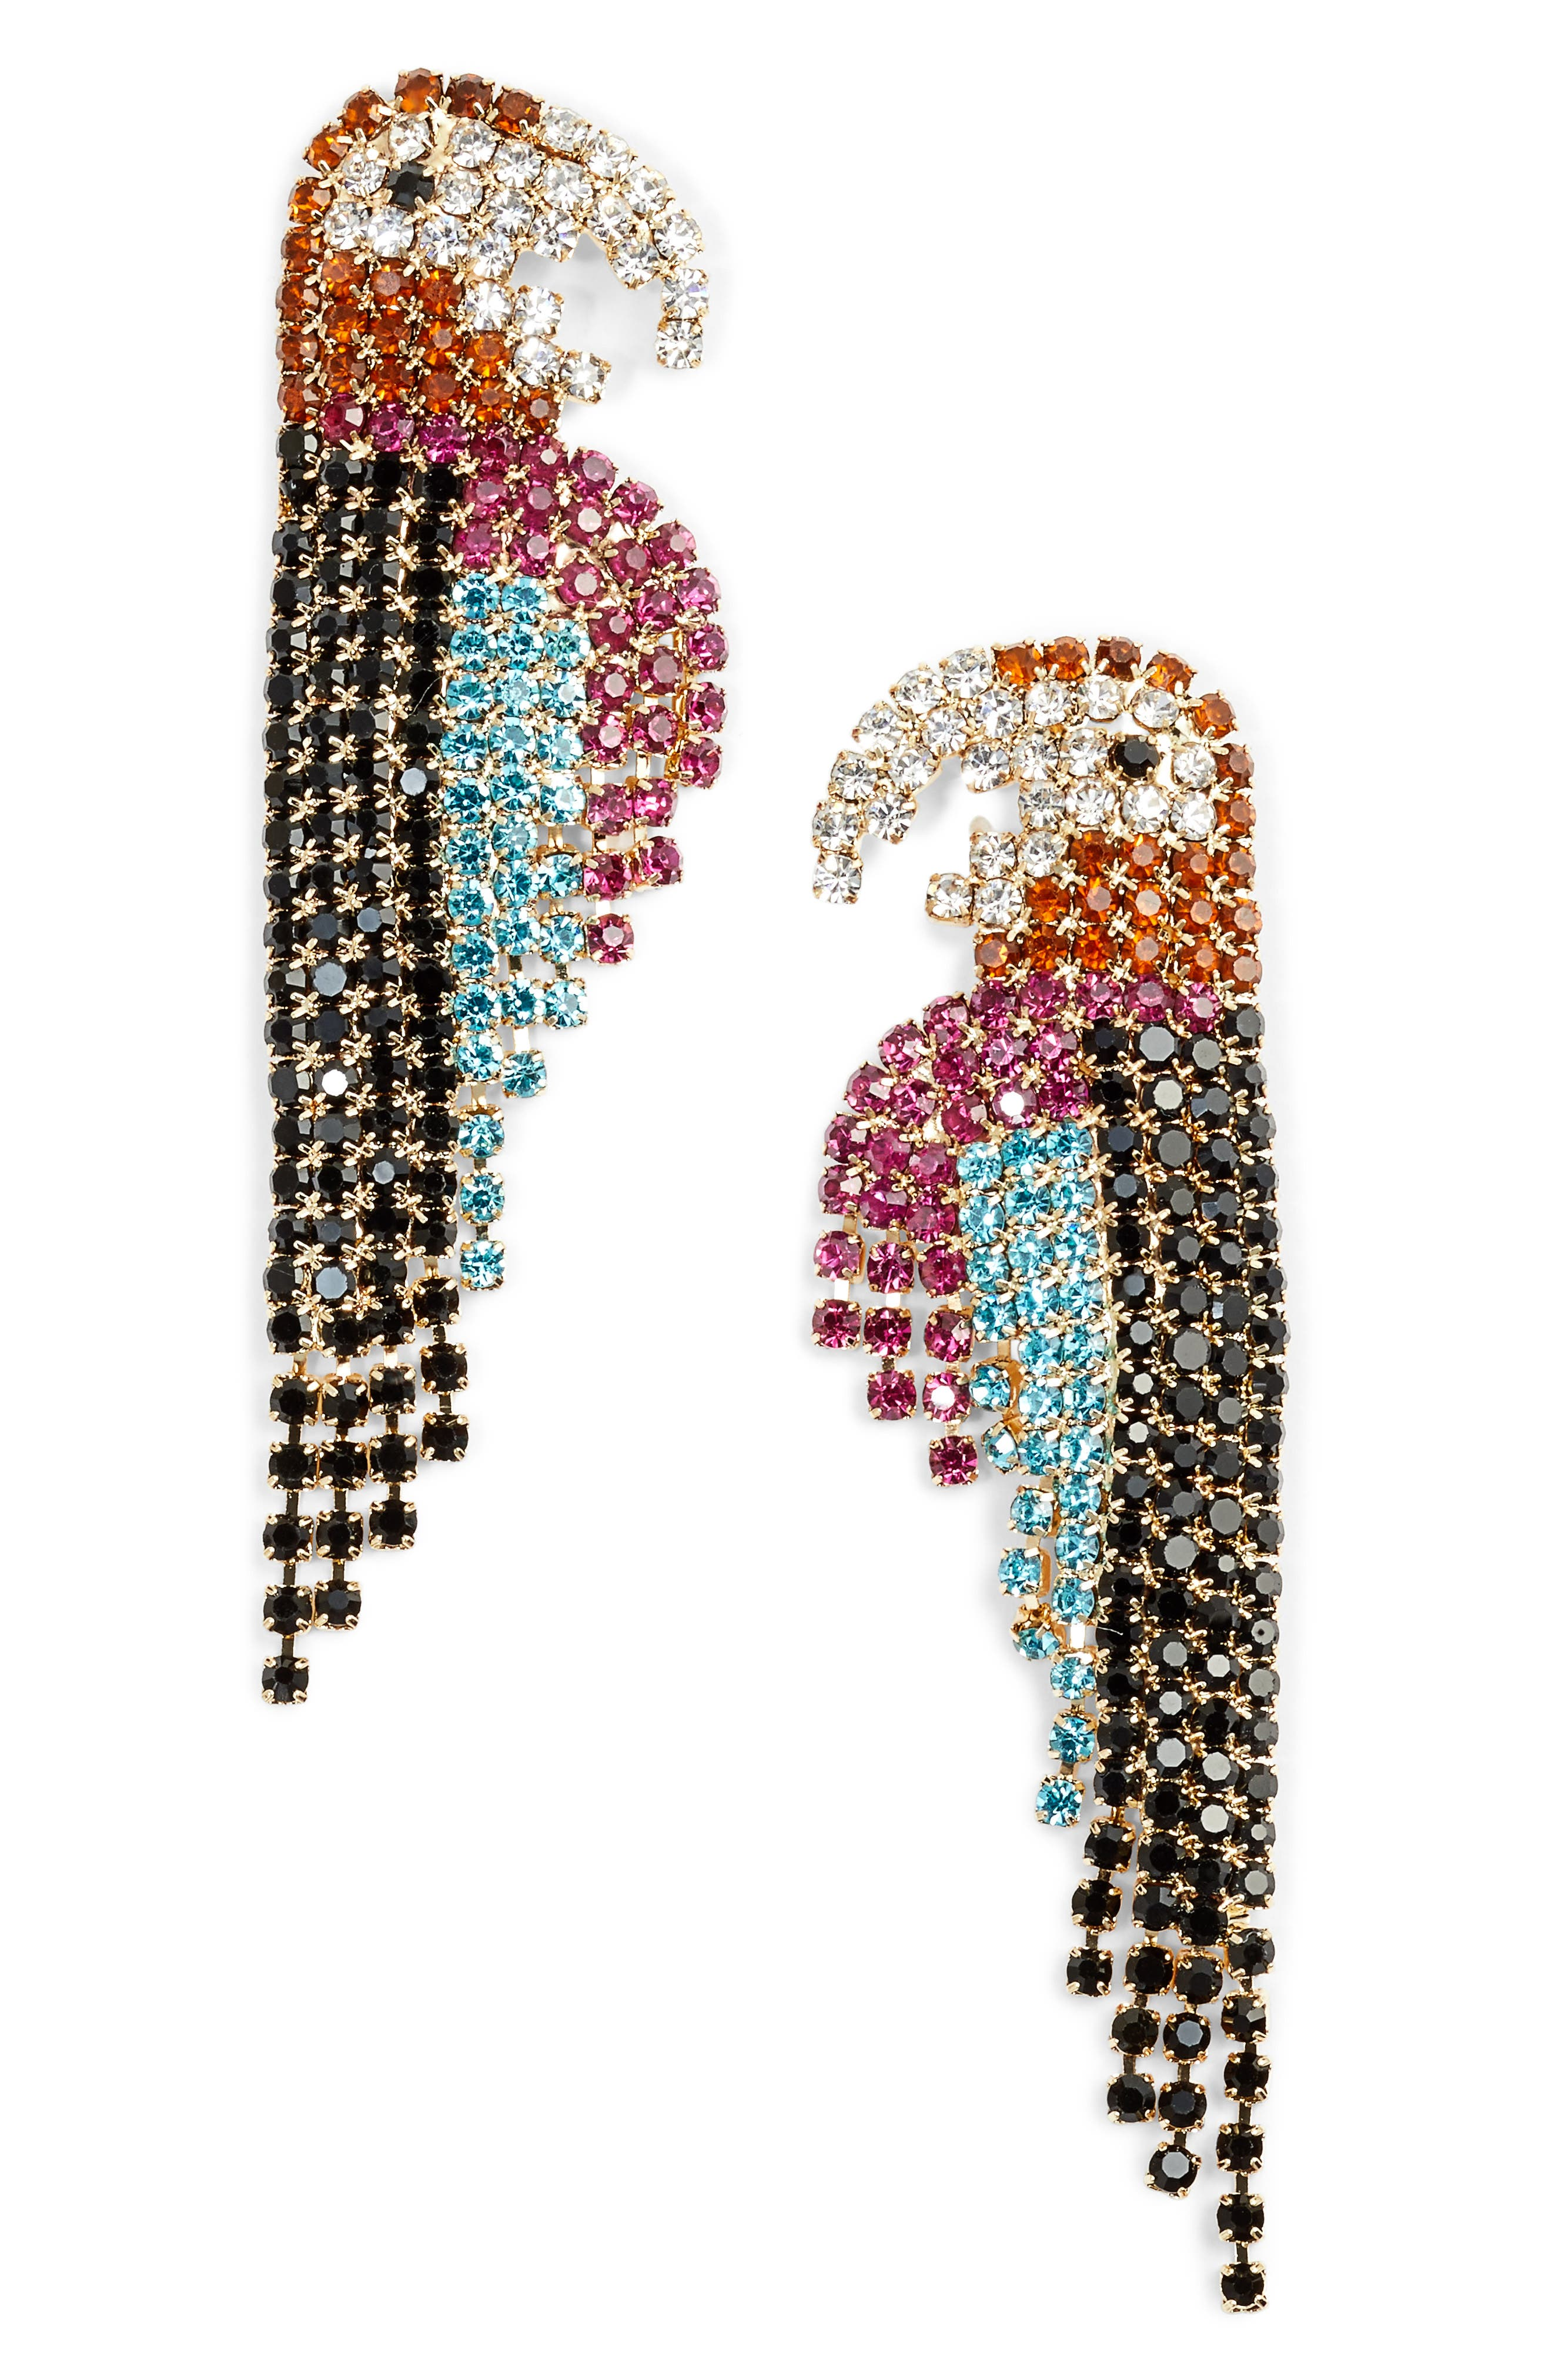 Polly Parrot Rhinestone Statement Earrings,                         Main,                         color, Multi